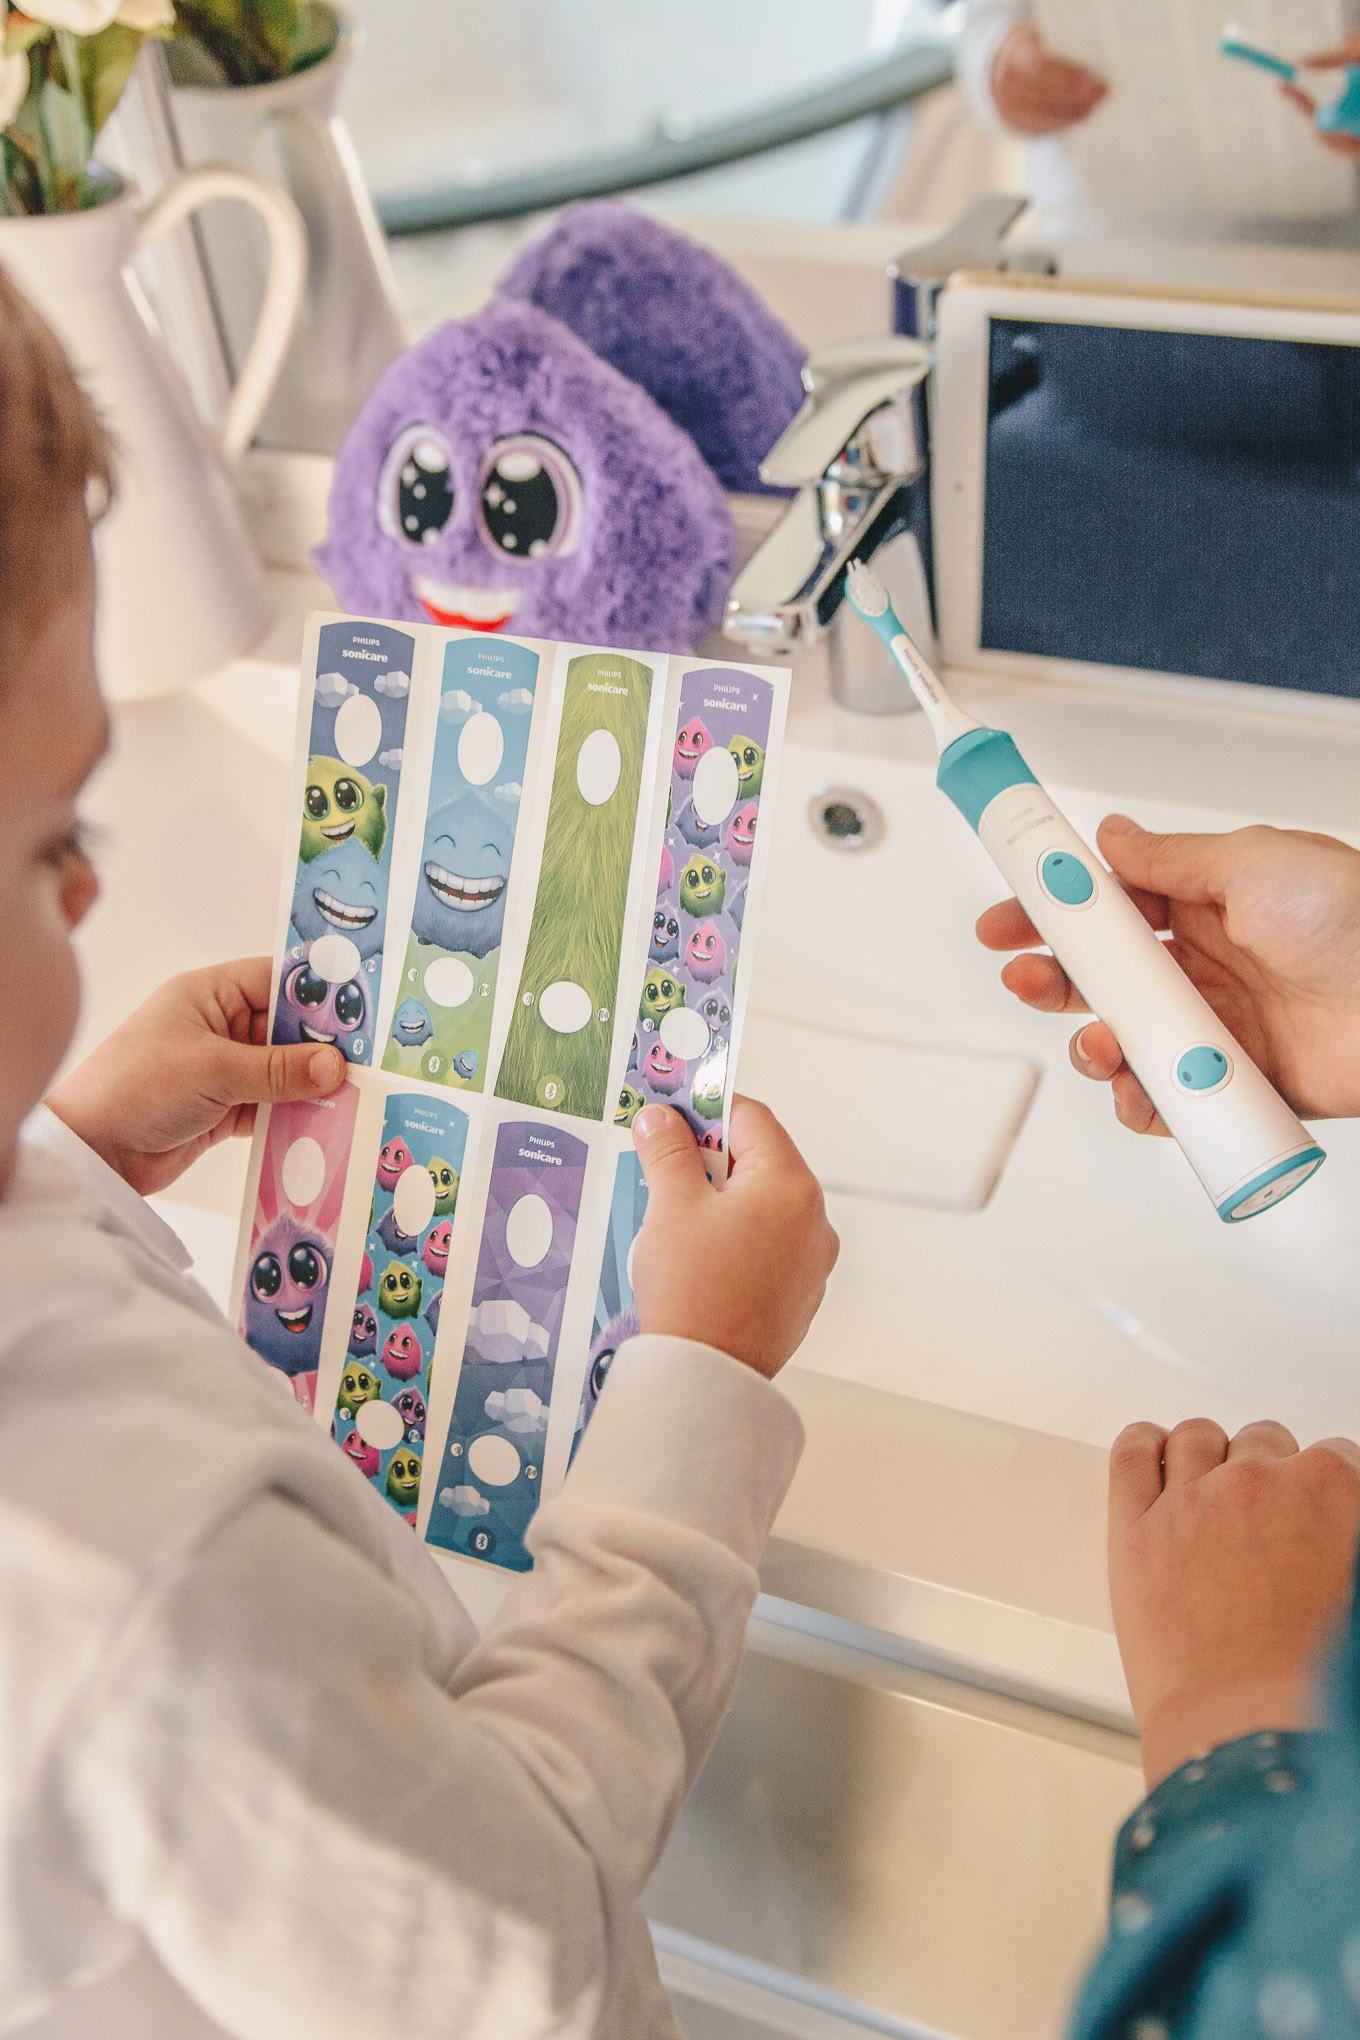 Sonicare for kids stickers